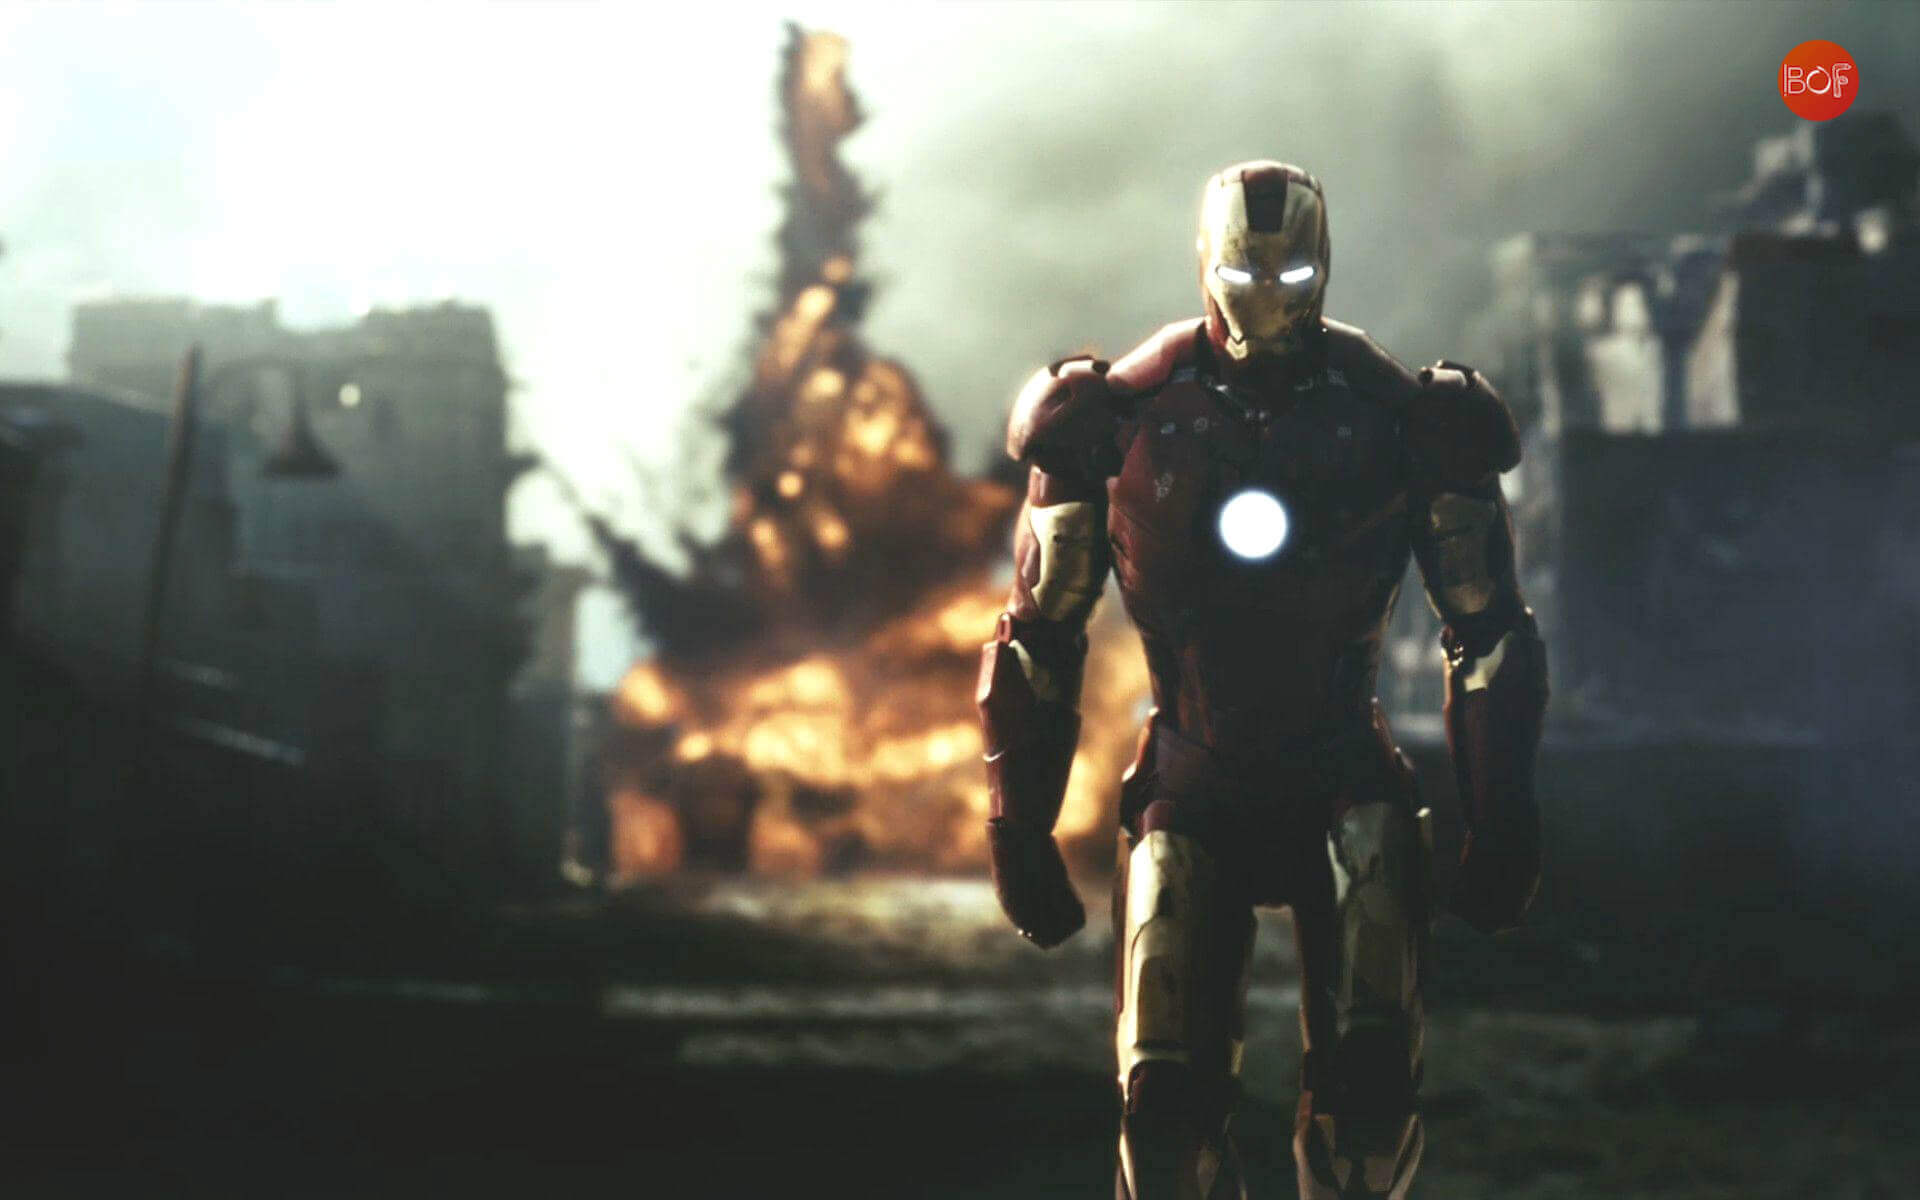 Iron Man fight